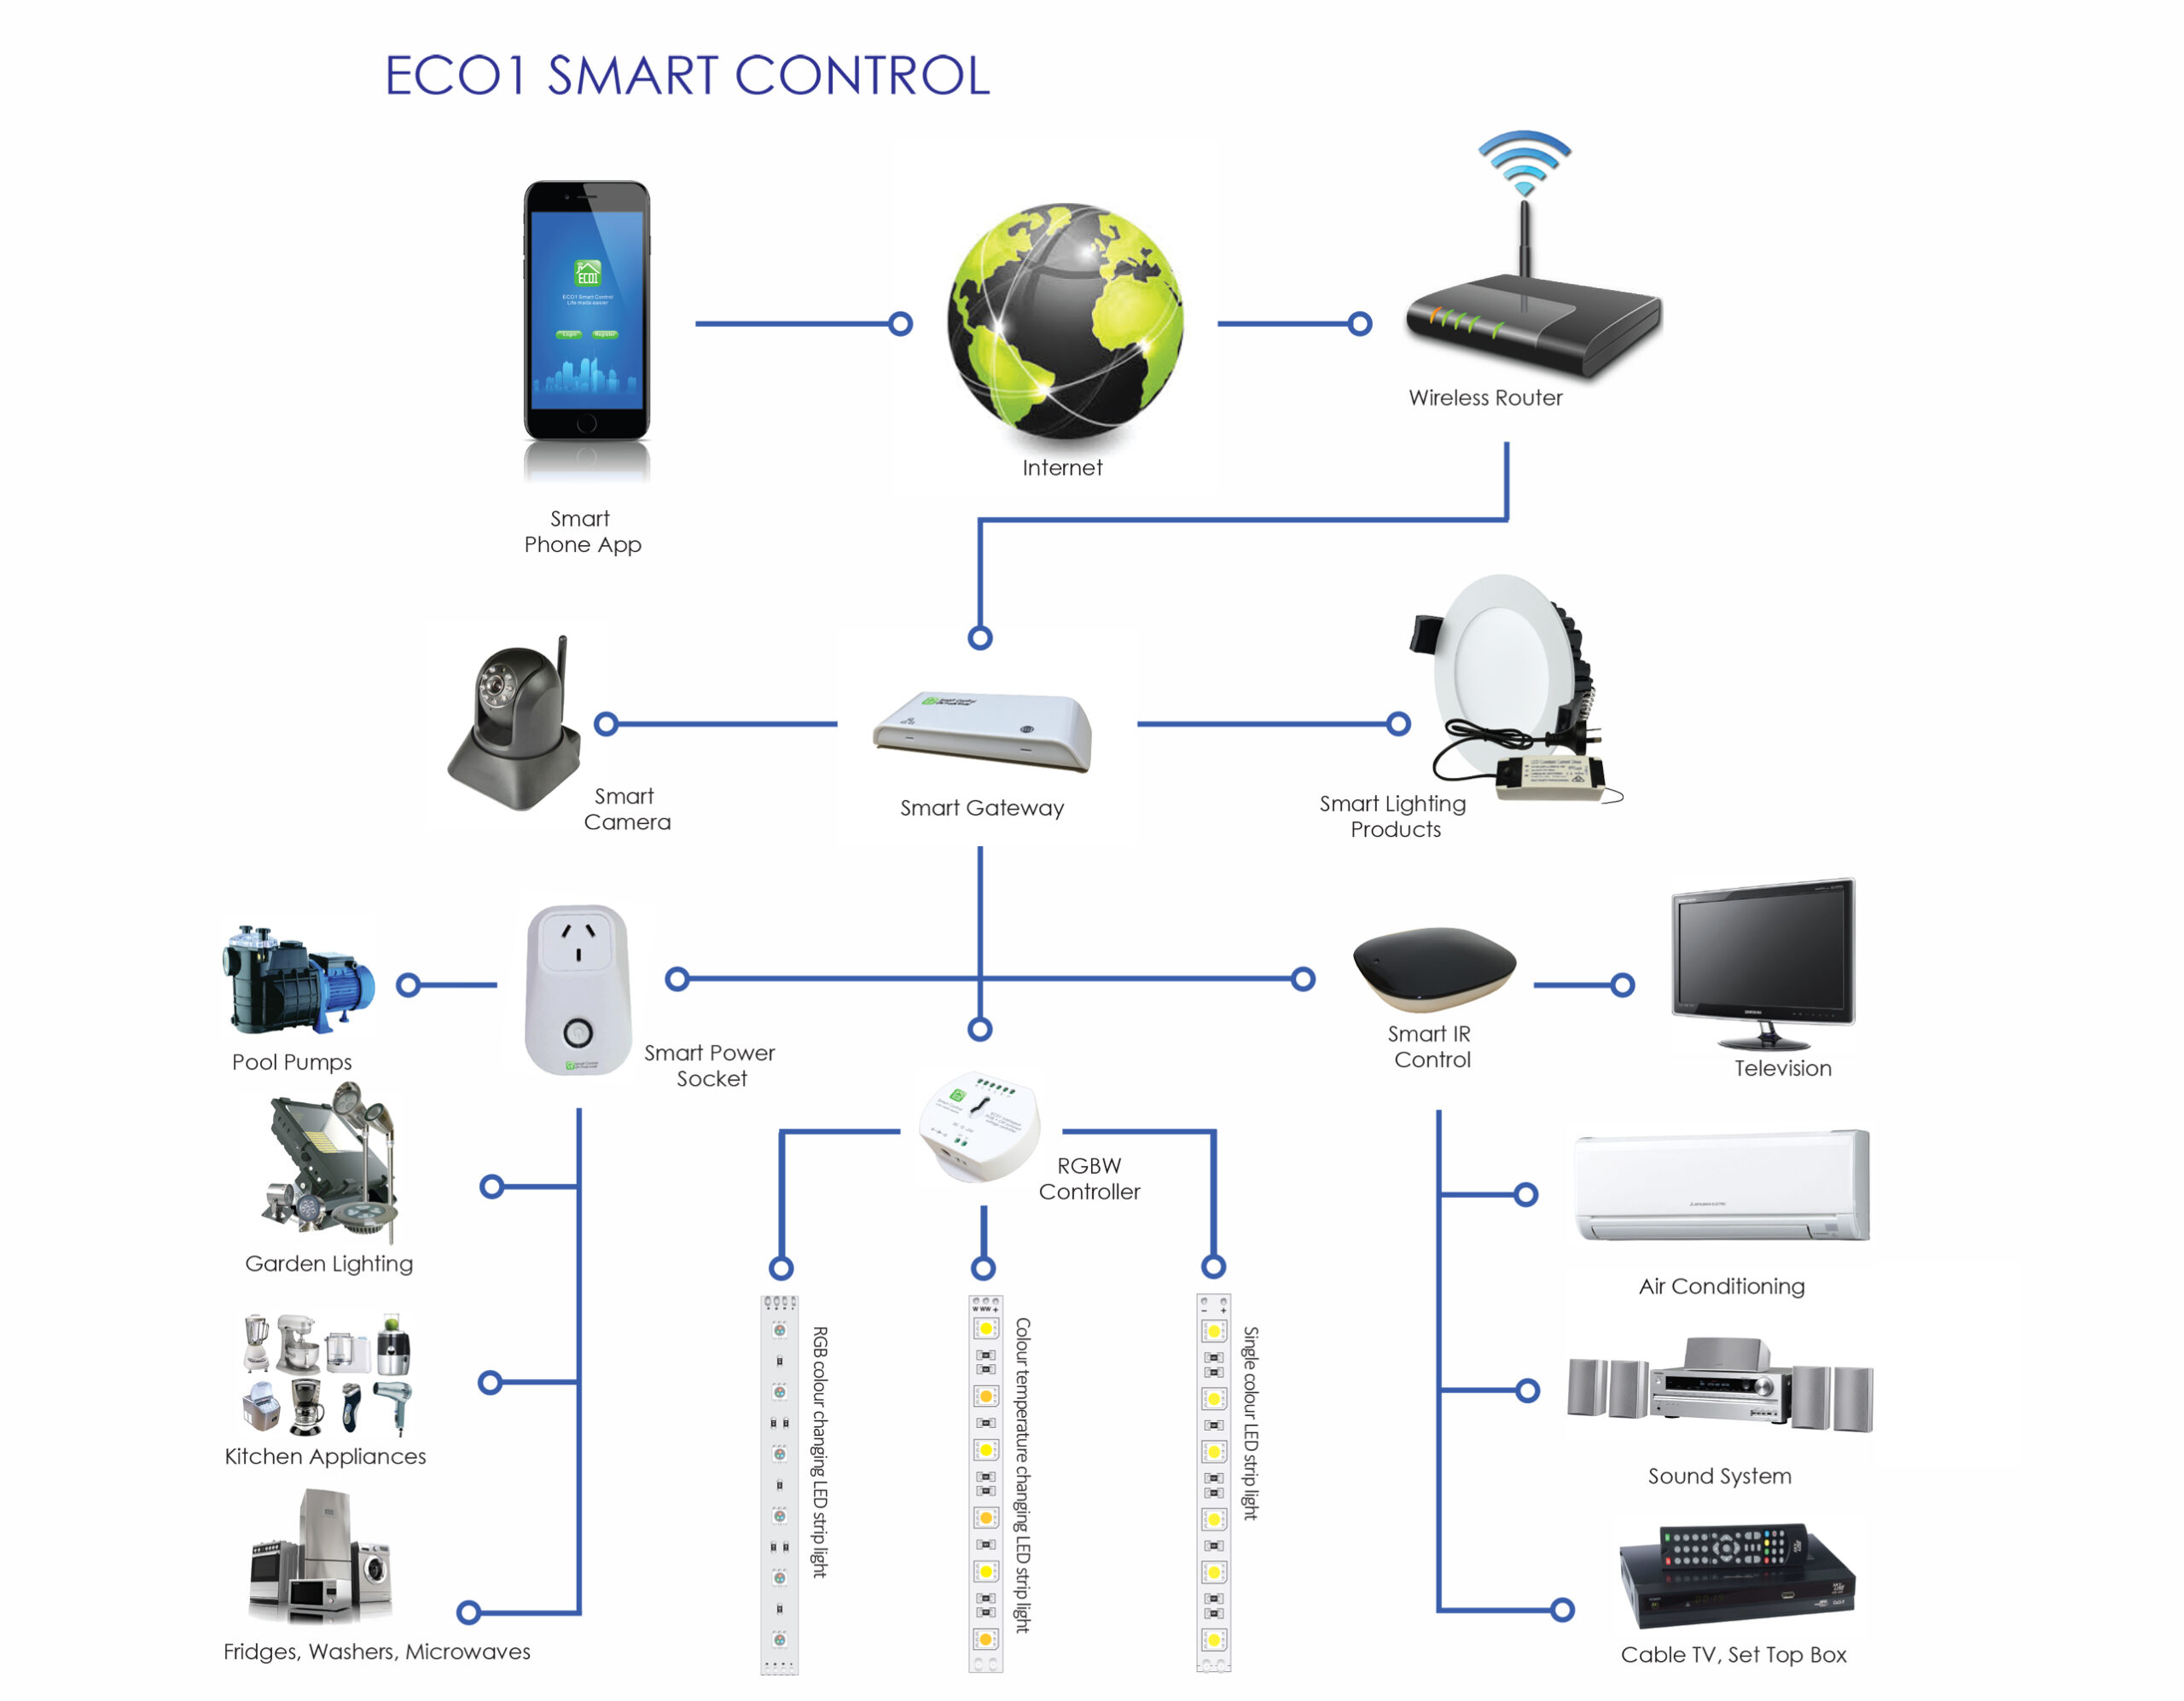 ECO1 Smart Products